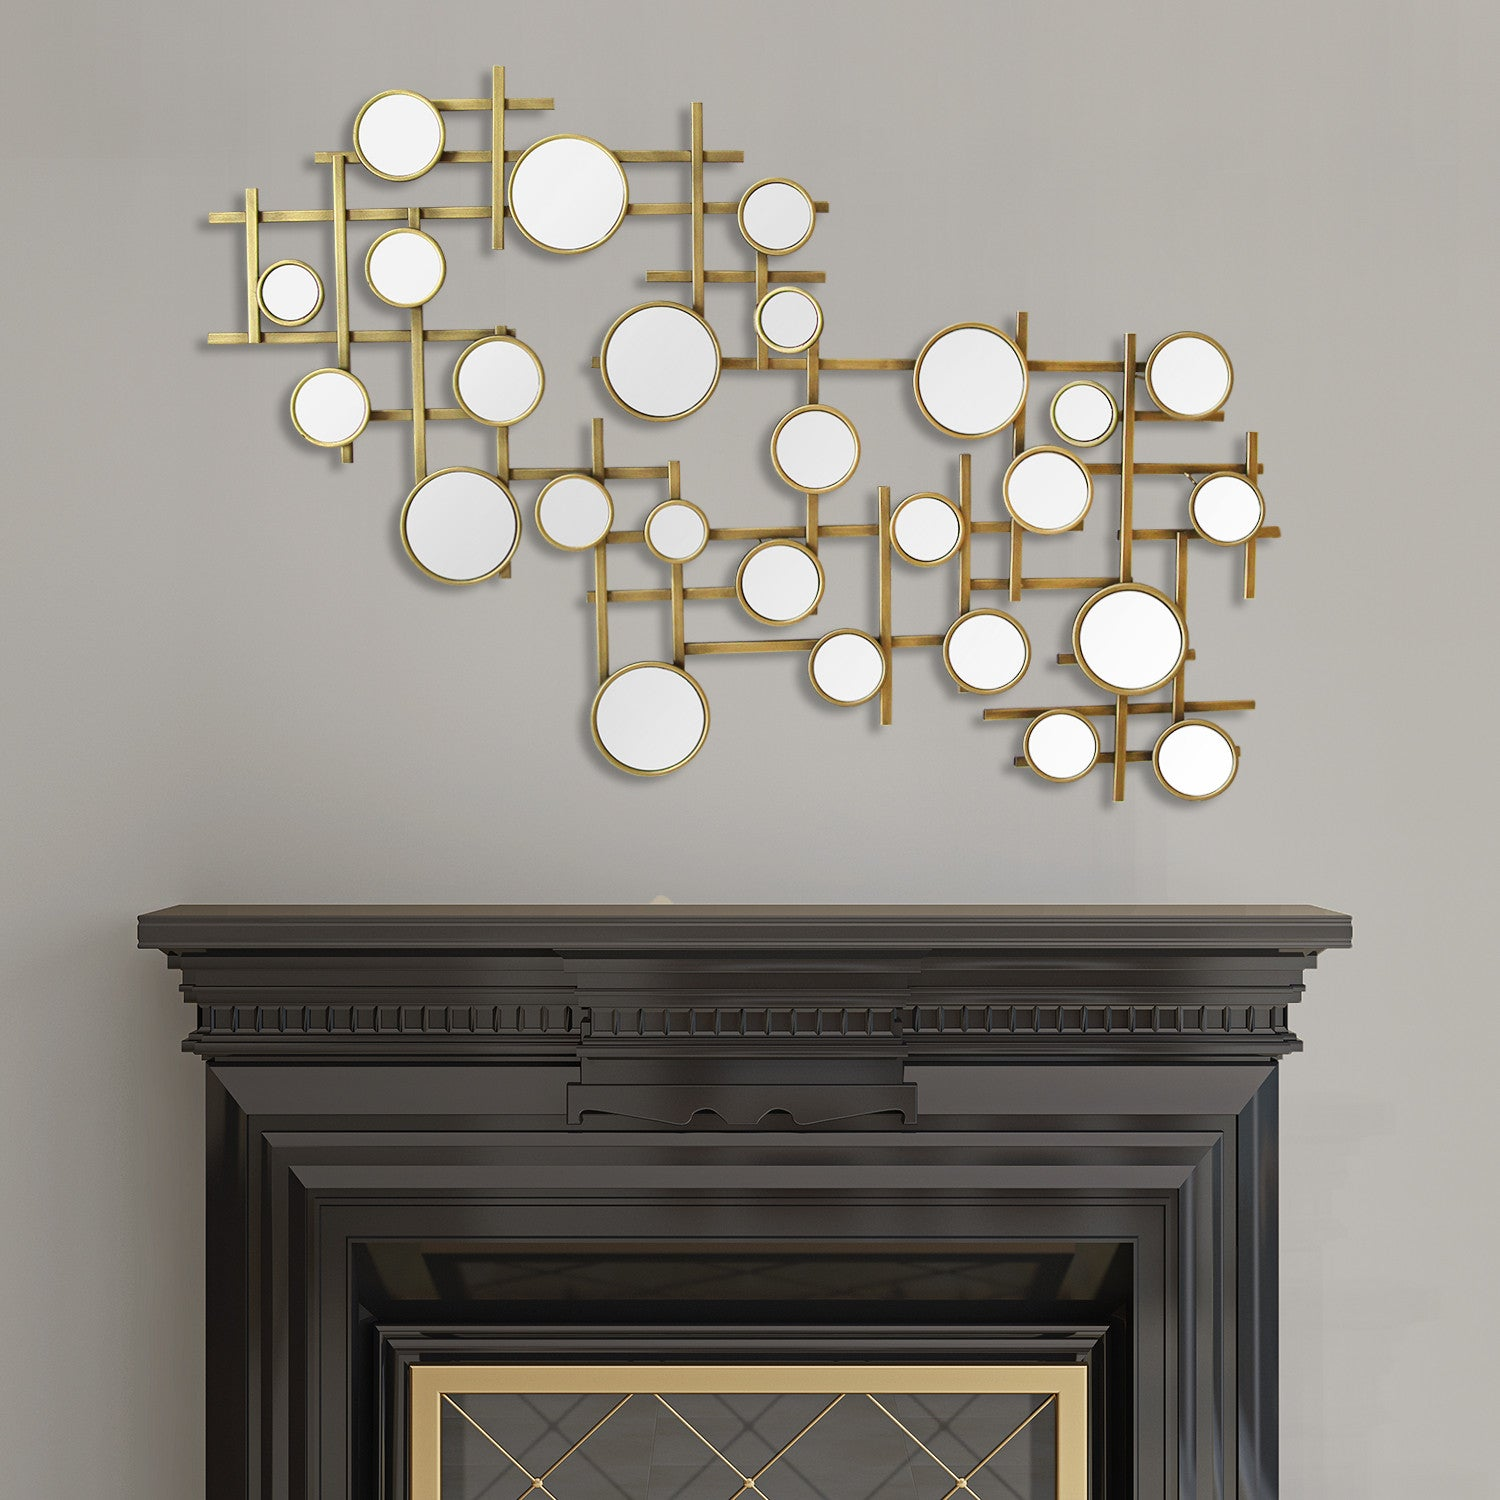 Elegant Wall Decor elegant mirror cluster wall décor – stratton home decor